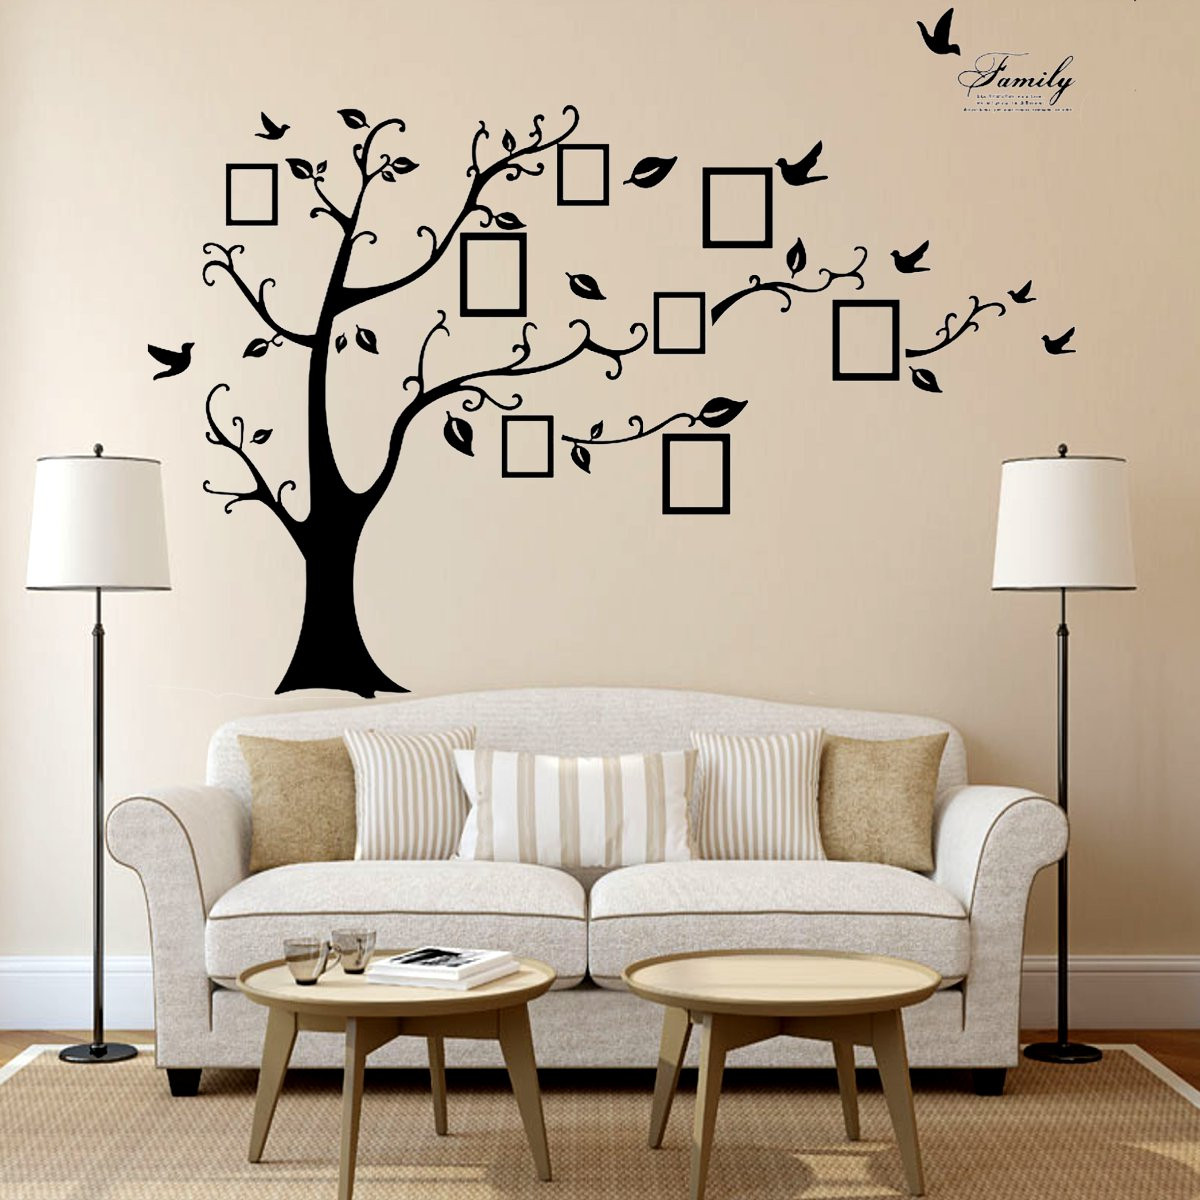 25m removable memory tree picture frames wallpaper photo wall 209c64b1 ae74 d127 8e02 42afd5c383d4g amipublicfo Choice Image